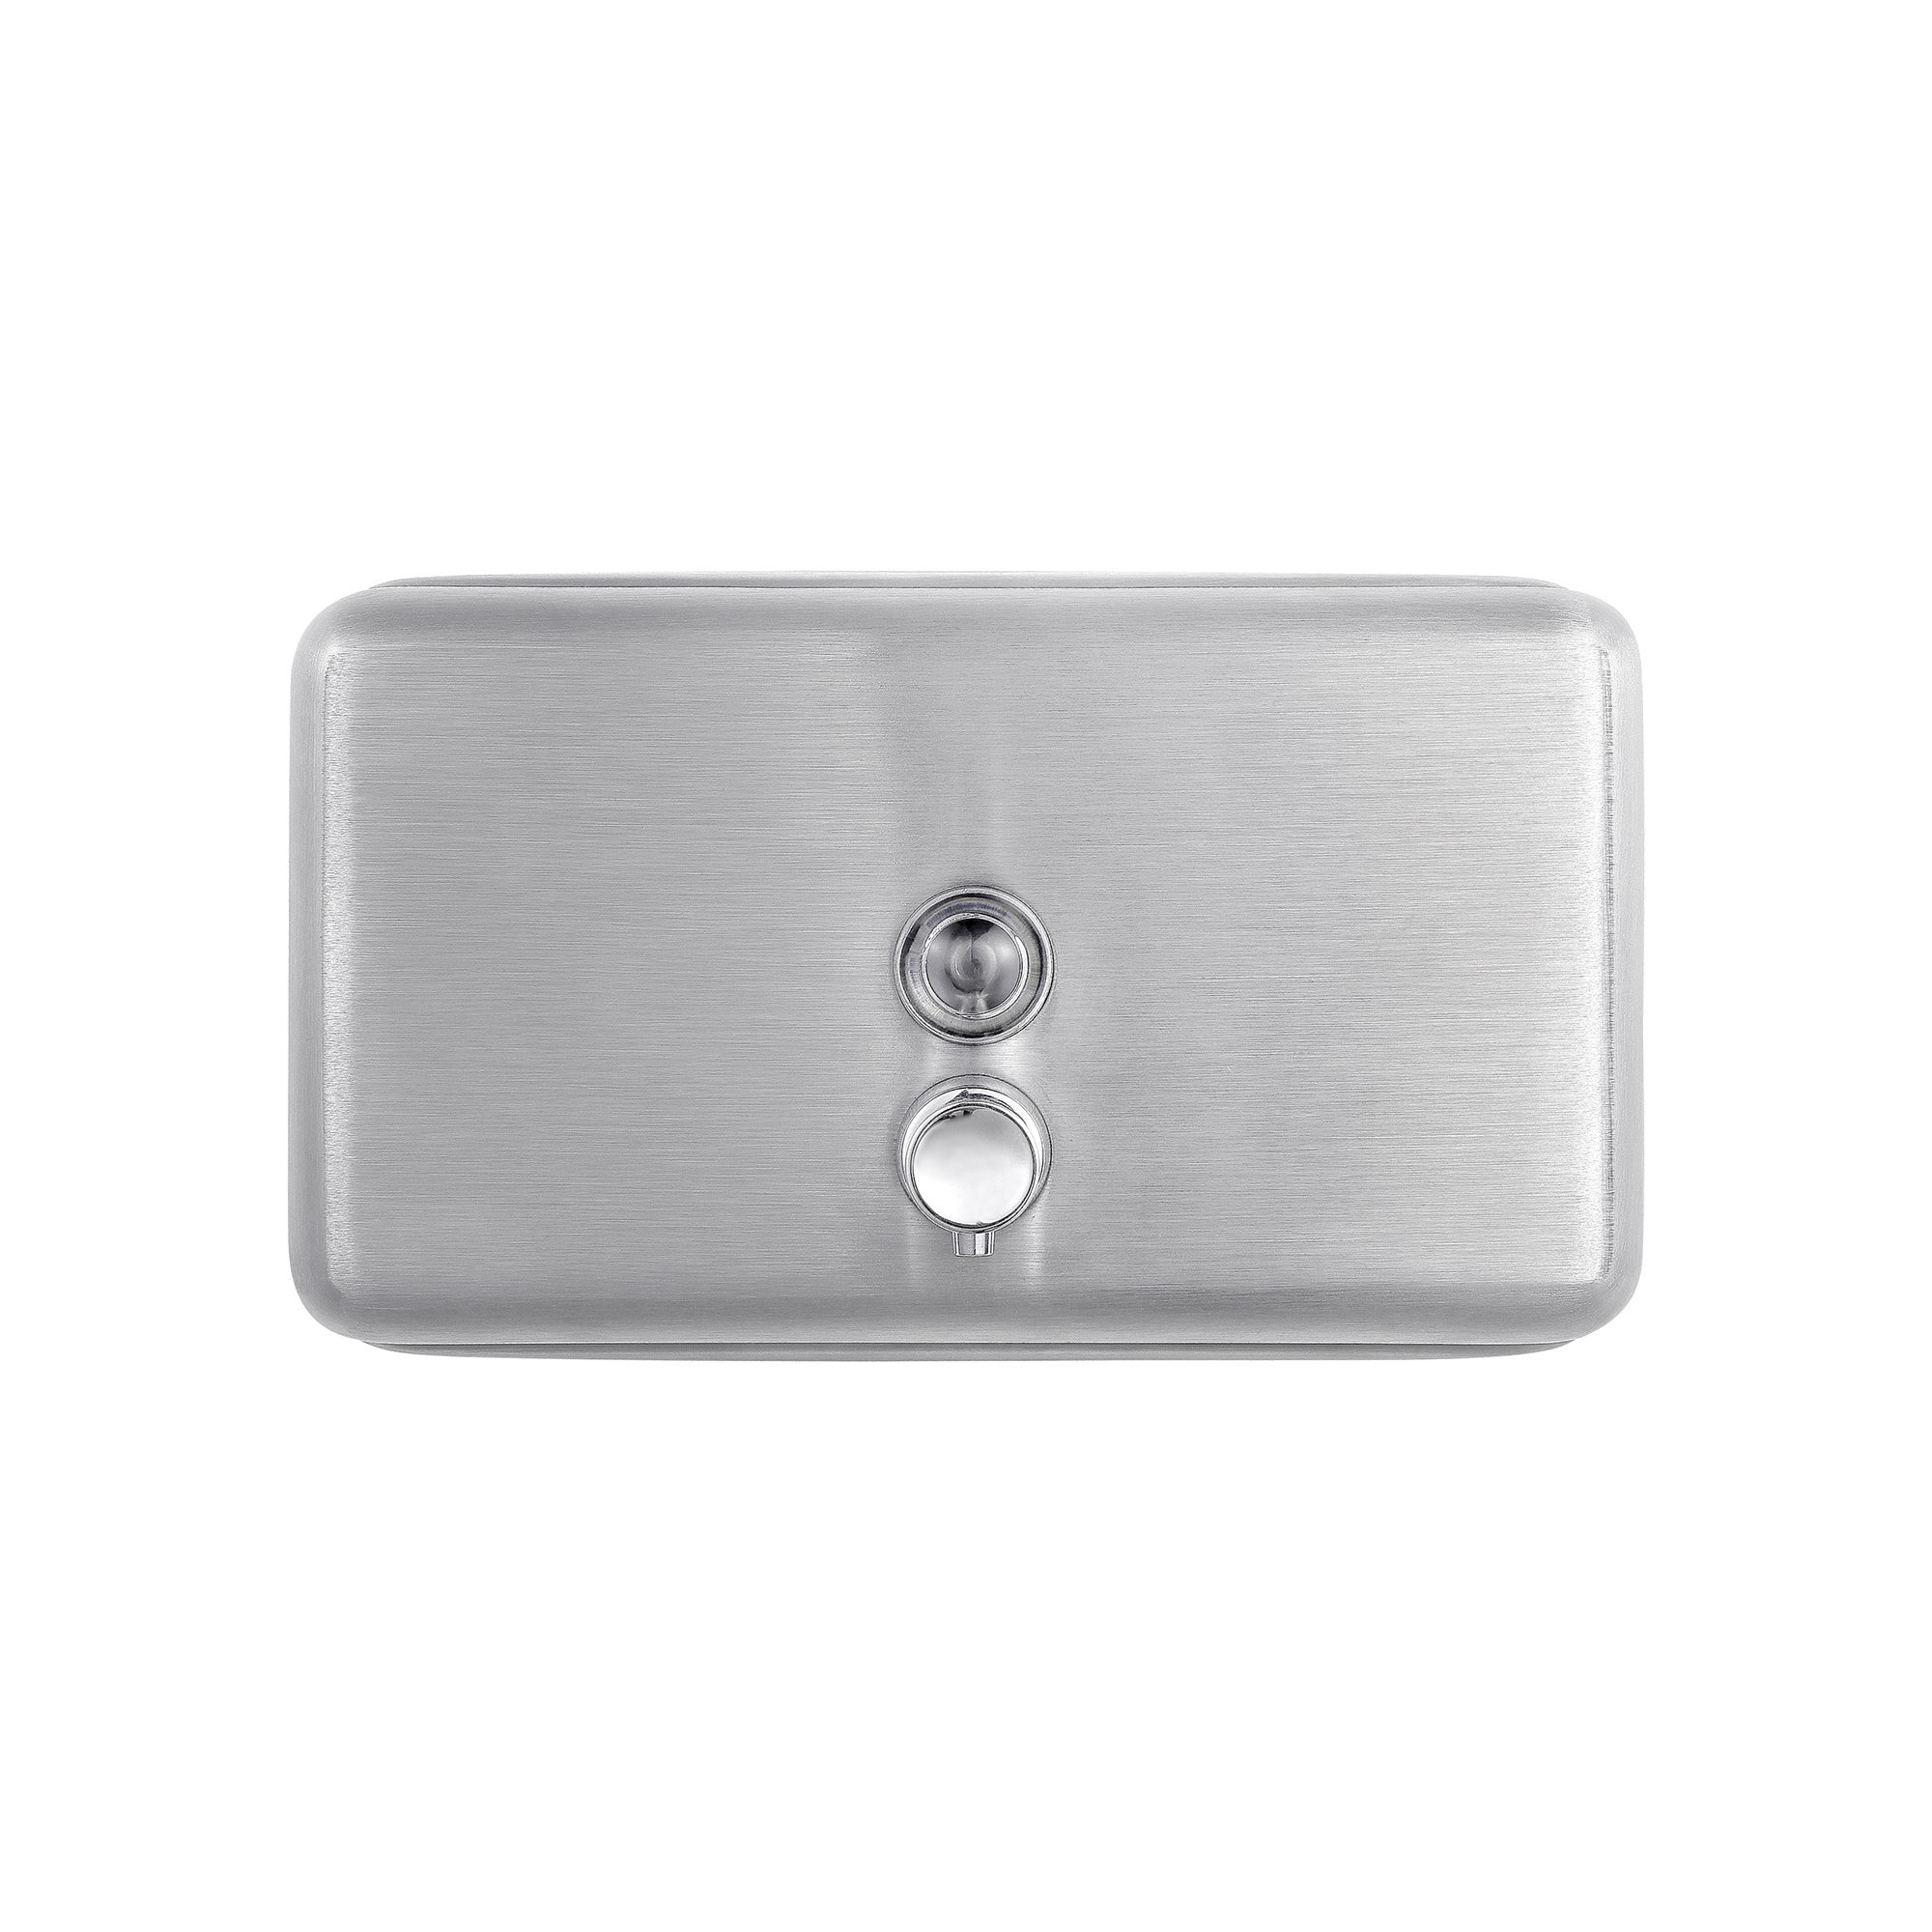 Dependable Direct Horizontal Wall Mounted Liquid Soap Dispenser (40oz Capacity) - 304 Grade Stainless Steel - Key Locked - for Use in Hospitals, Restaurants, Schools, Healthcare Facilities